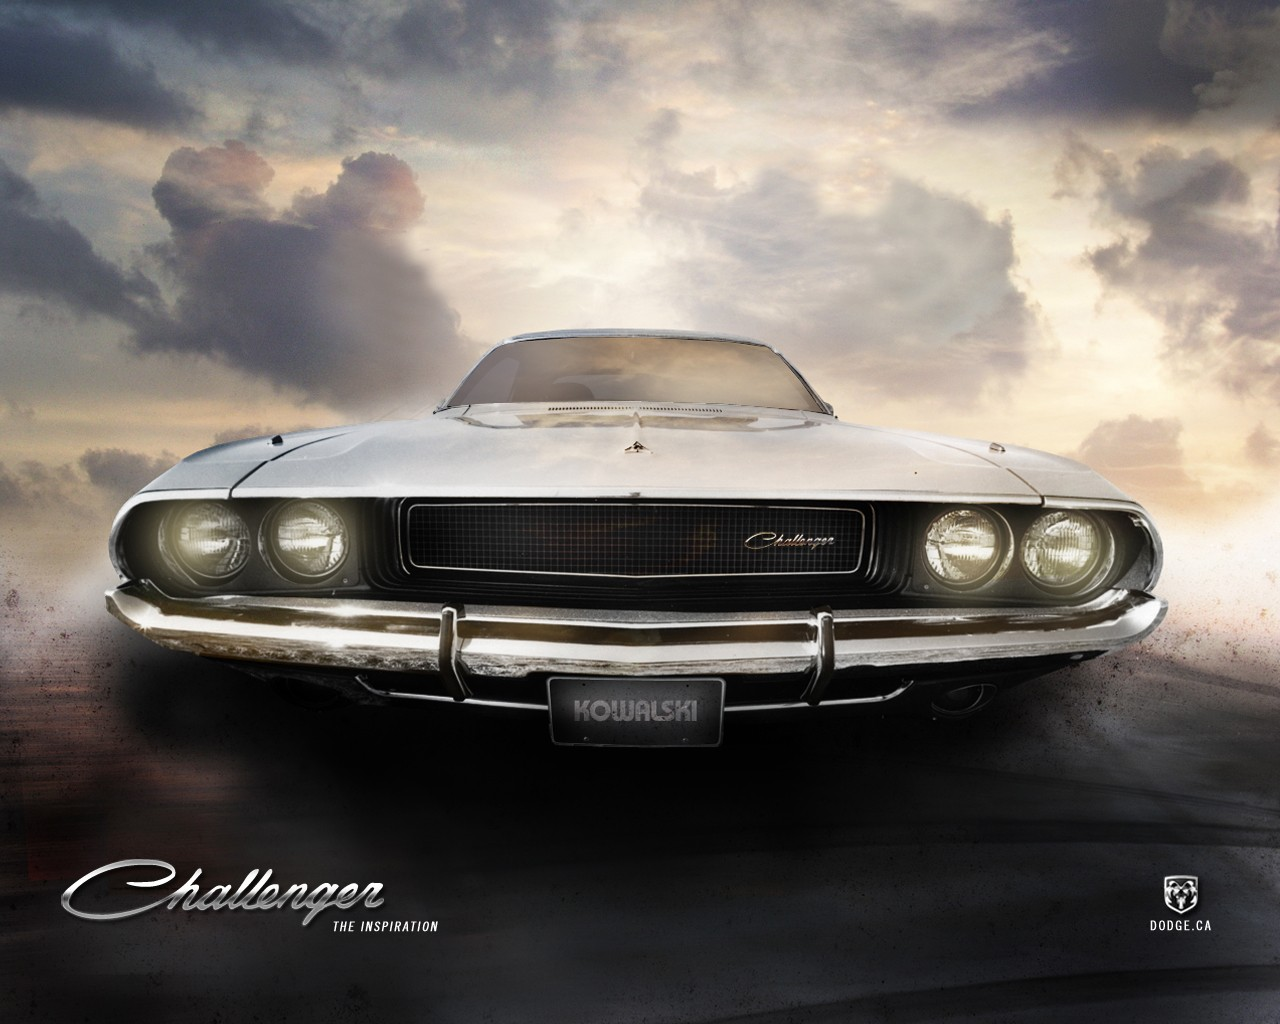 Dodge Challenger 1970 Wallpaper Dodge Challenger 1970 Wallpapers Hd Desktop And Mobile Backgrounds